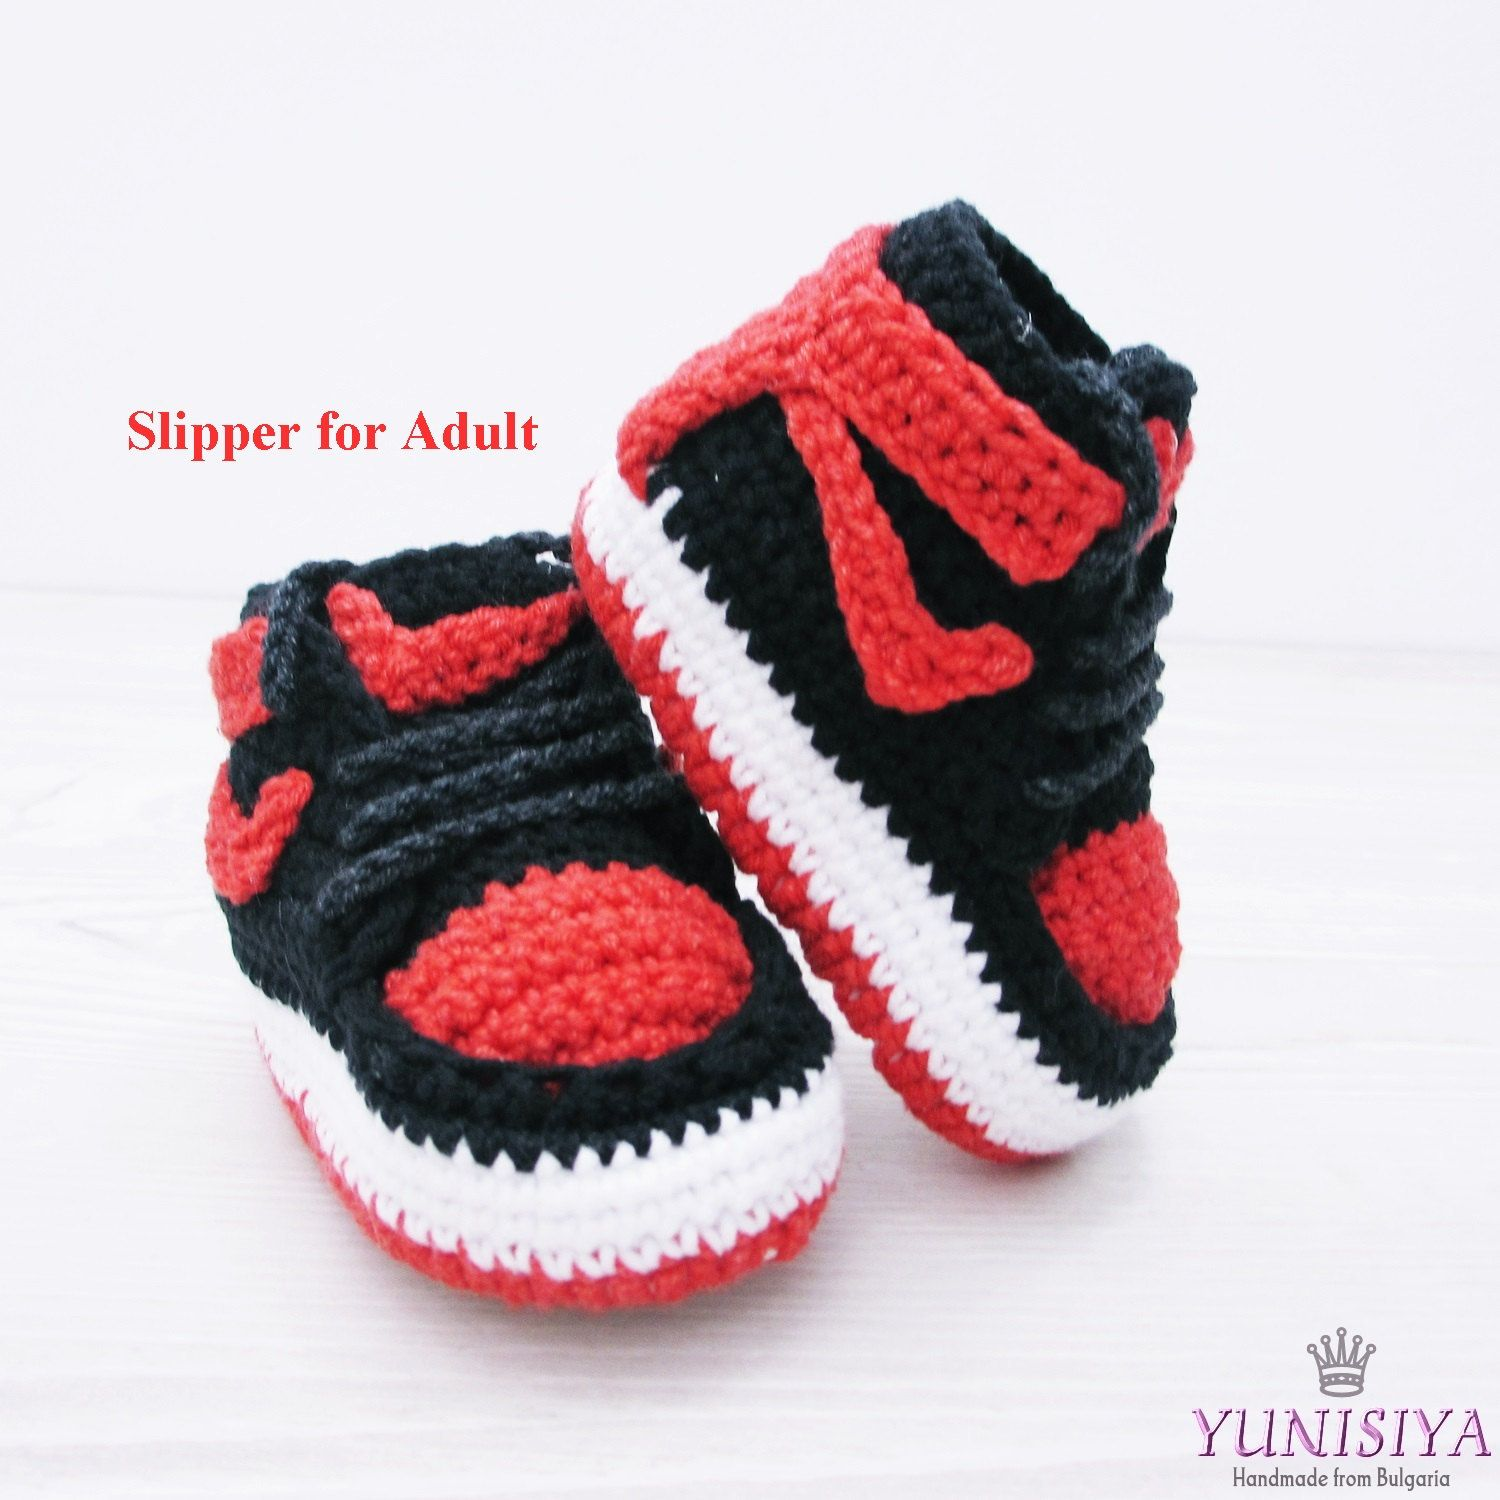 648df8641 Crocheted slippers Nike Air jordan Knitted shoes Slippers Men s Slippers Air  Jordan 1 Women s Slippers adult Sneakers slippers Shoe slippers by Yunisiya  on ...